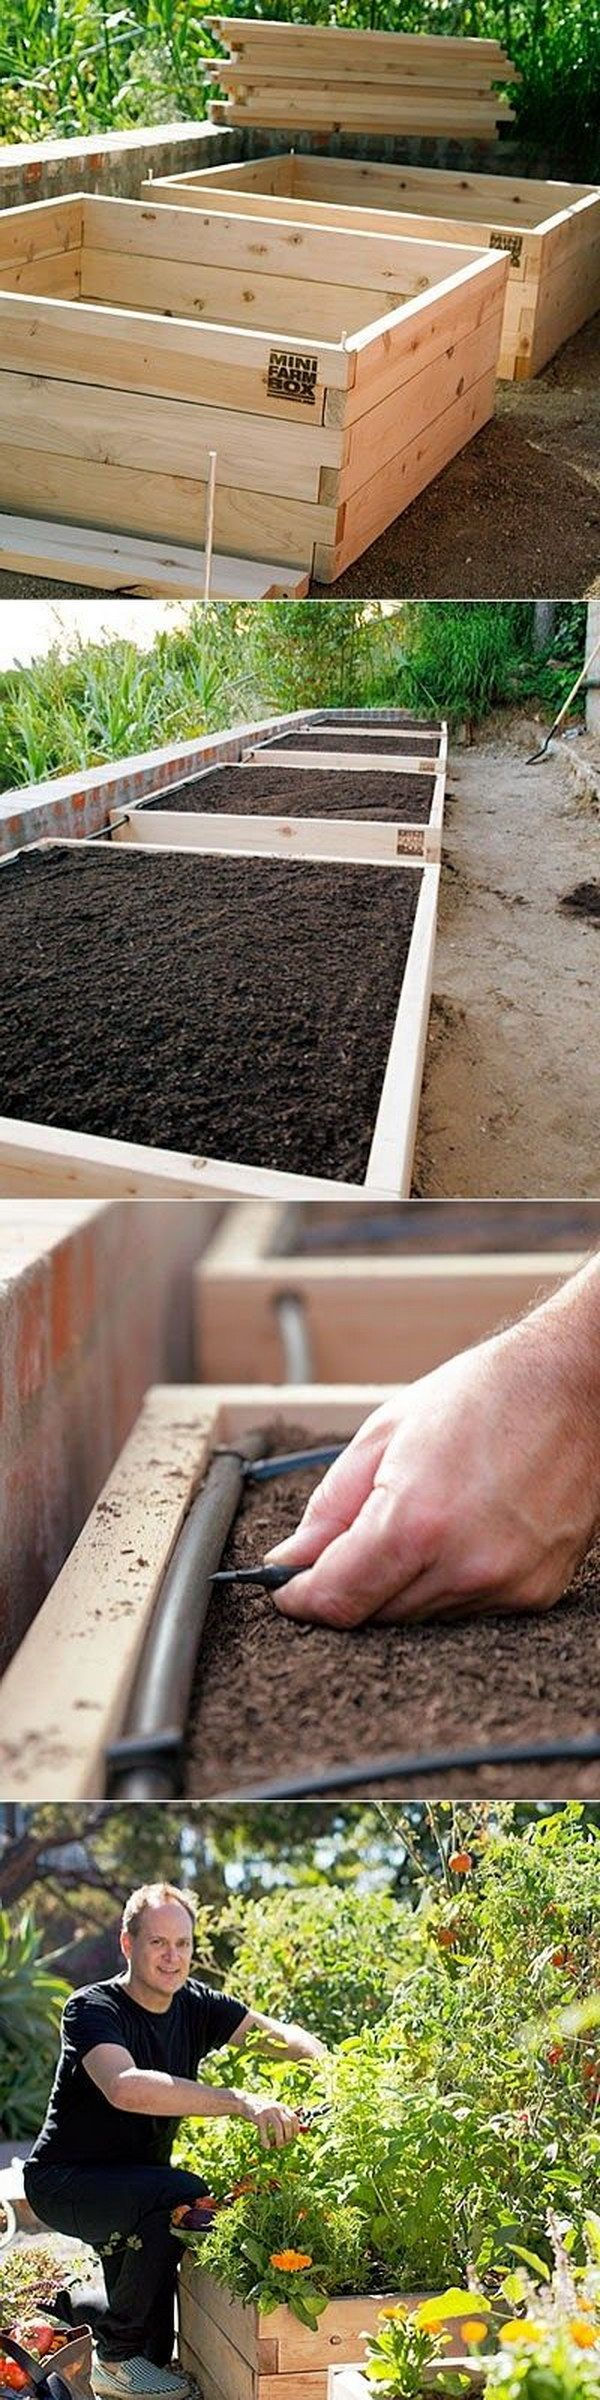 30+ Raised Garden Bed Ideas